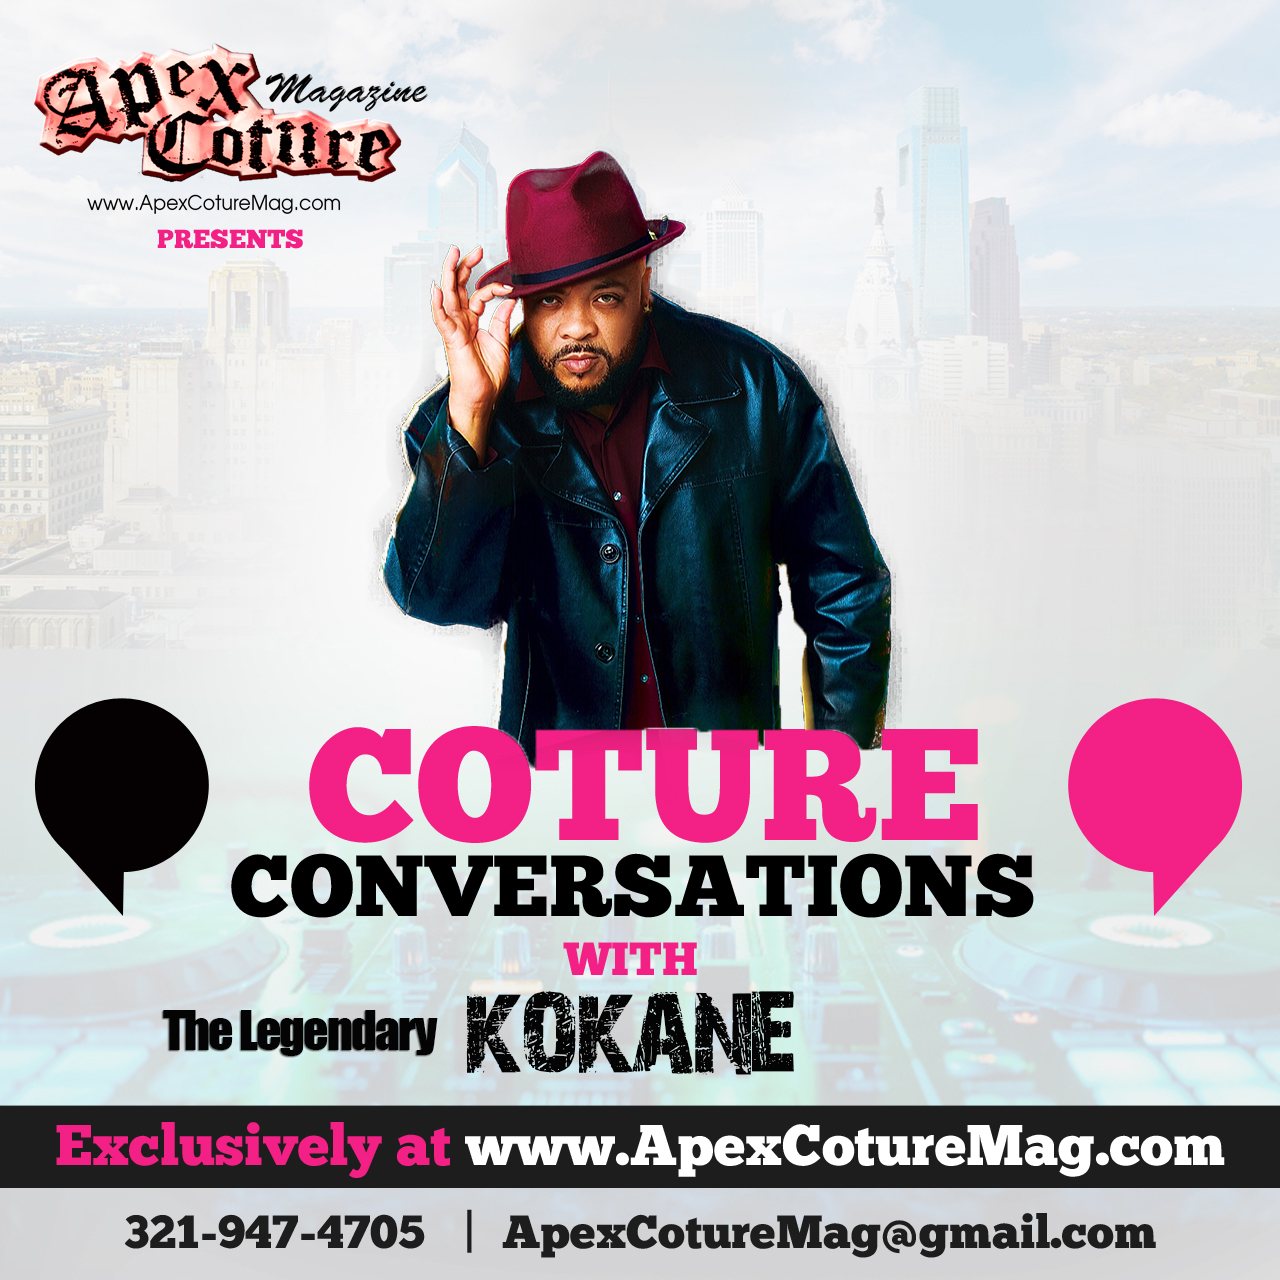 Kokane Coture Coversation